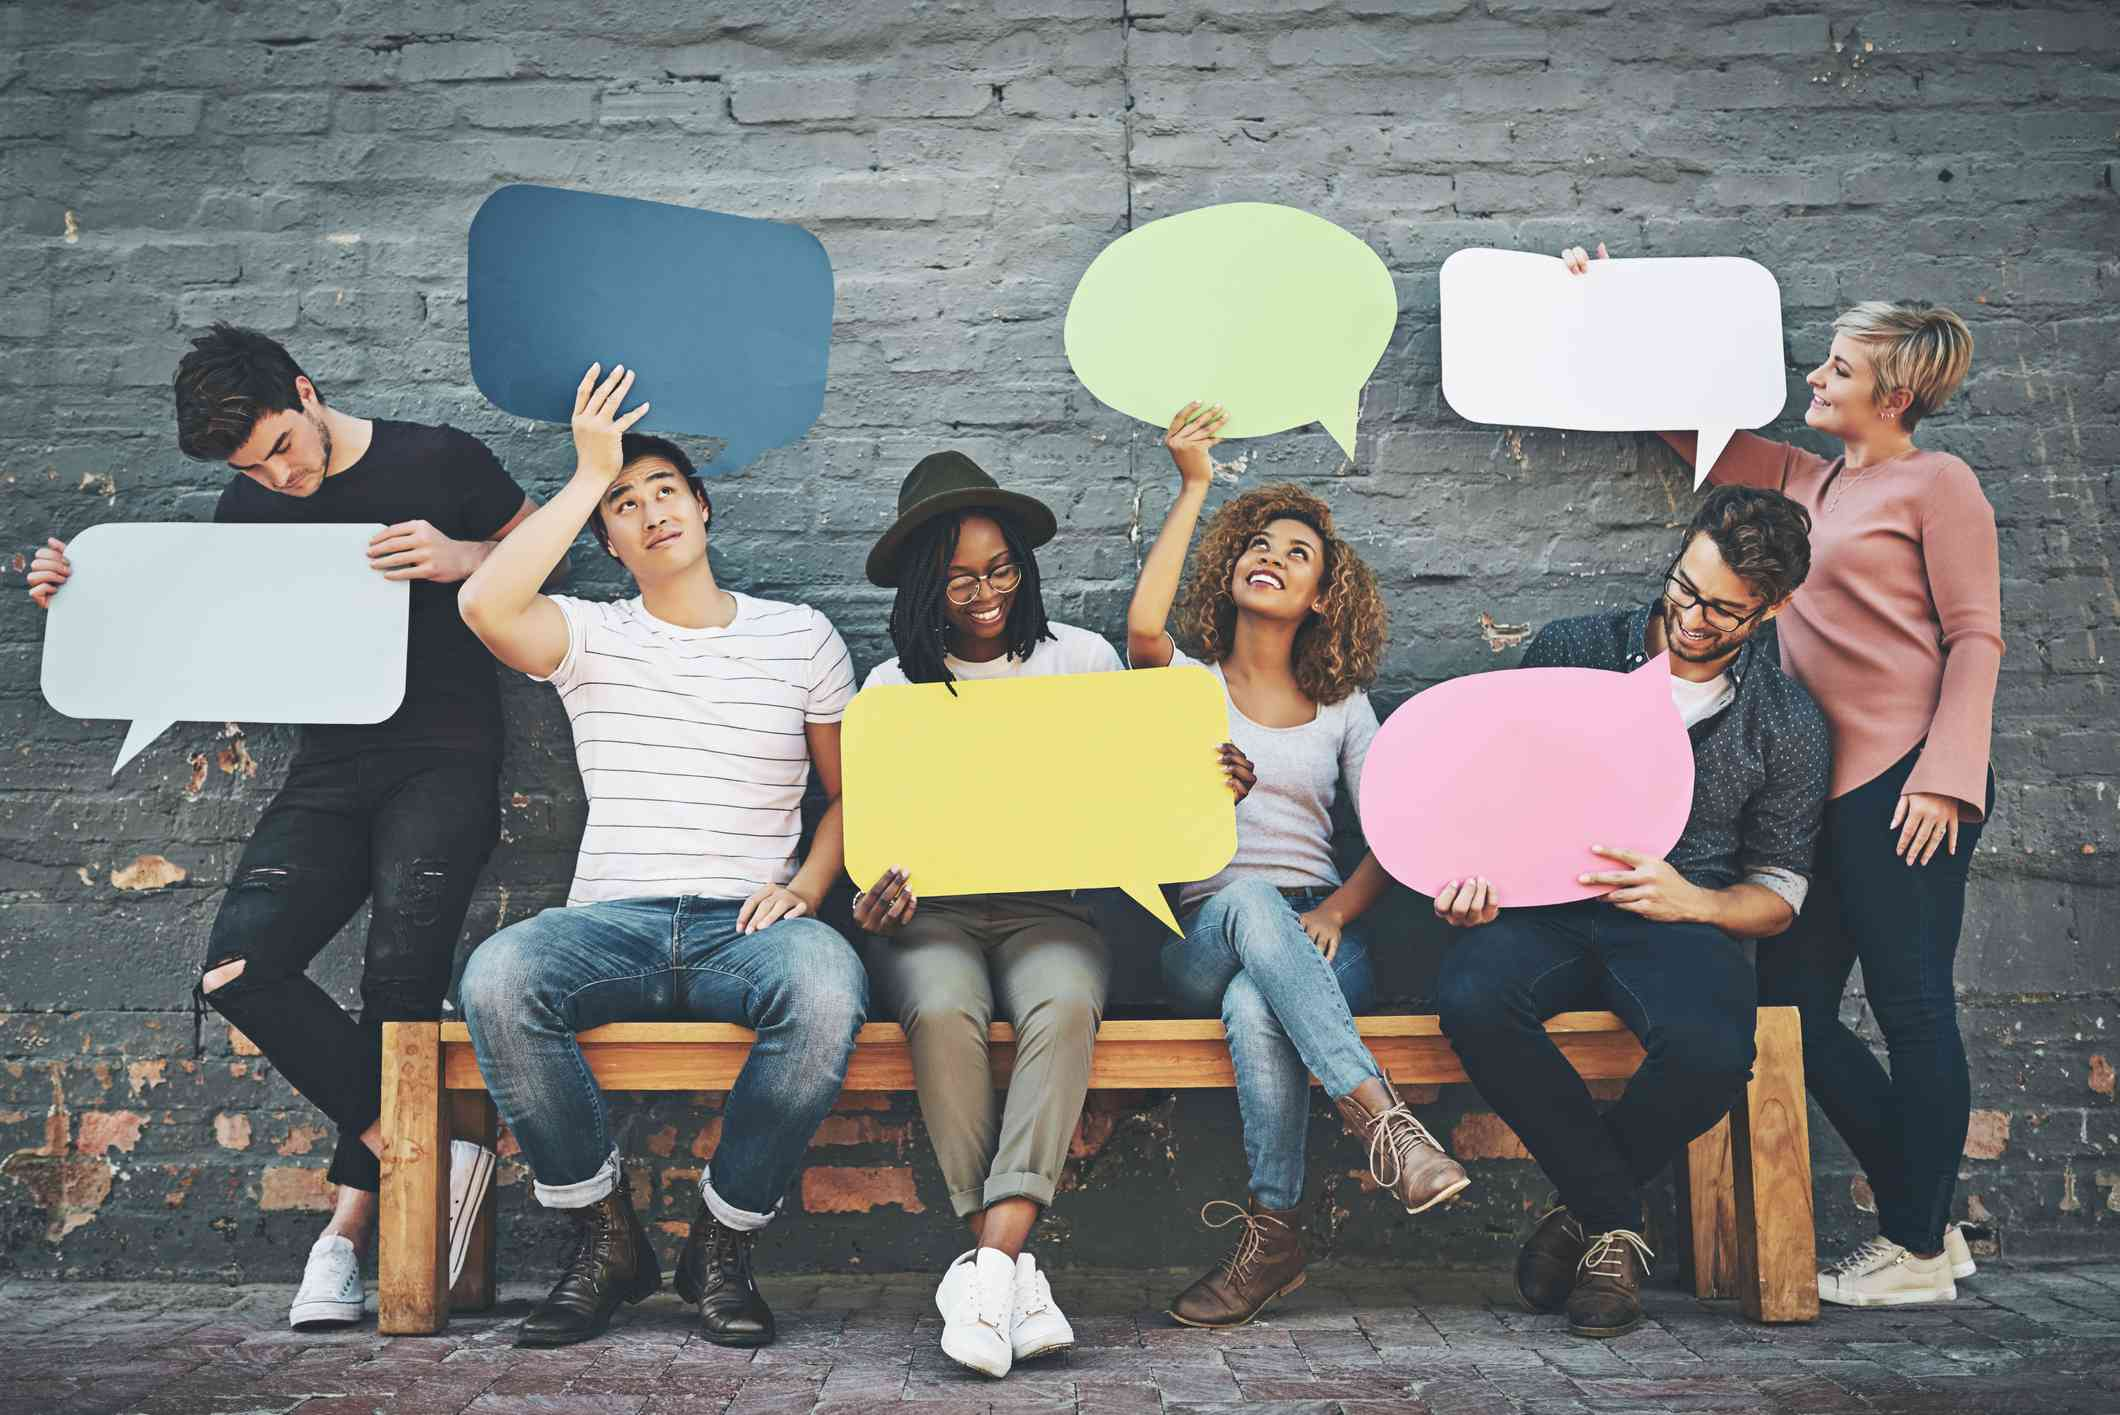 Shot of a diverse group of people holding up speech bubbles